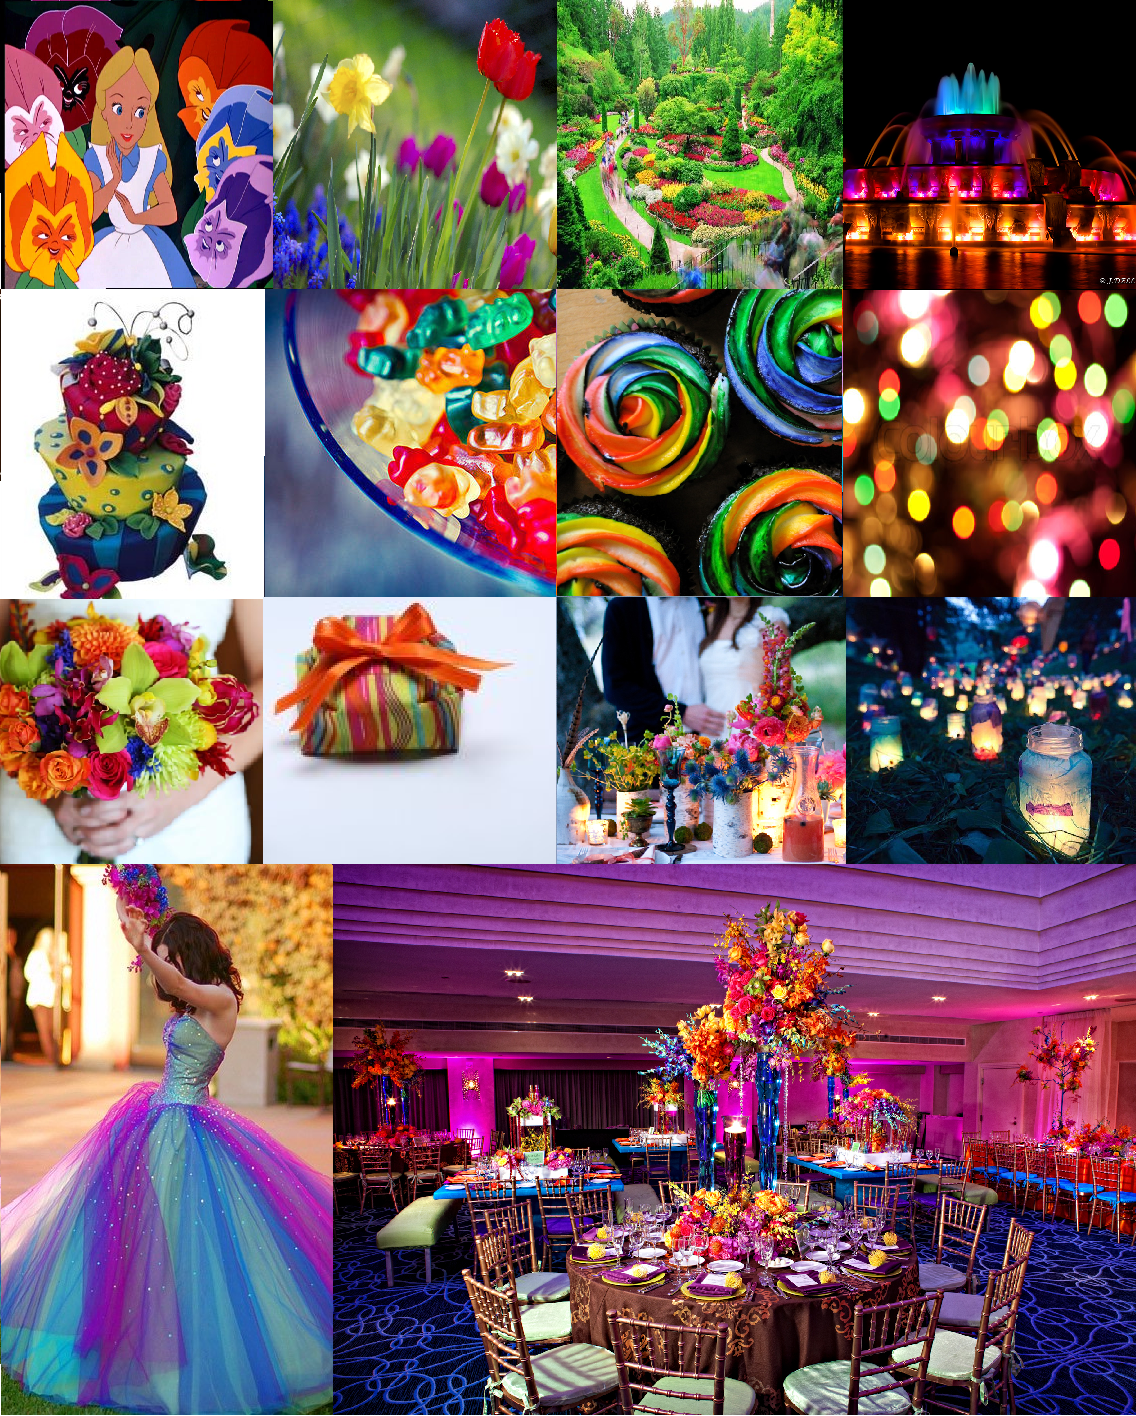 Wedding Ideas And Inspirations: A Magical Wedding Guide: Inspiration For A Colorful Garden